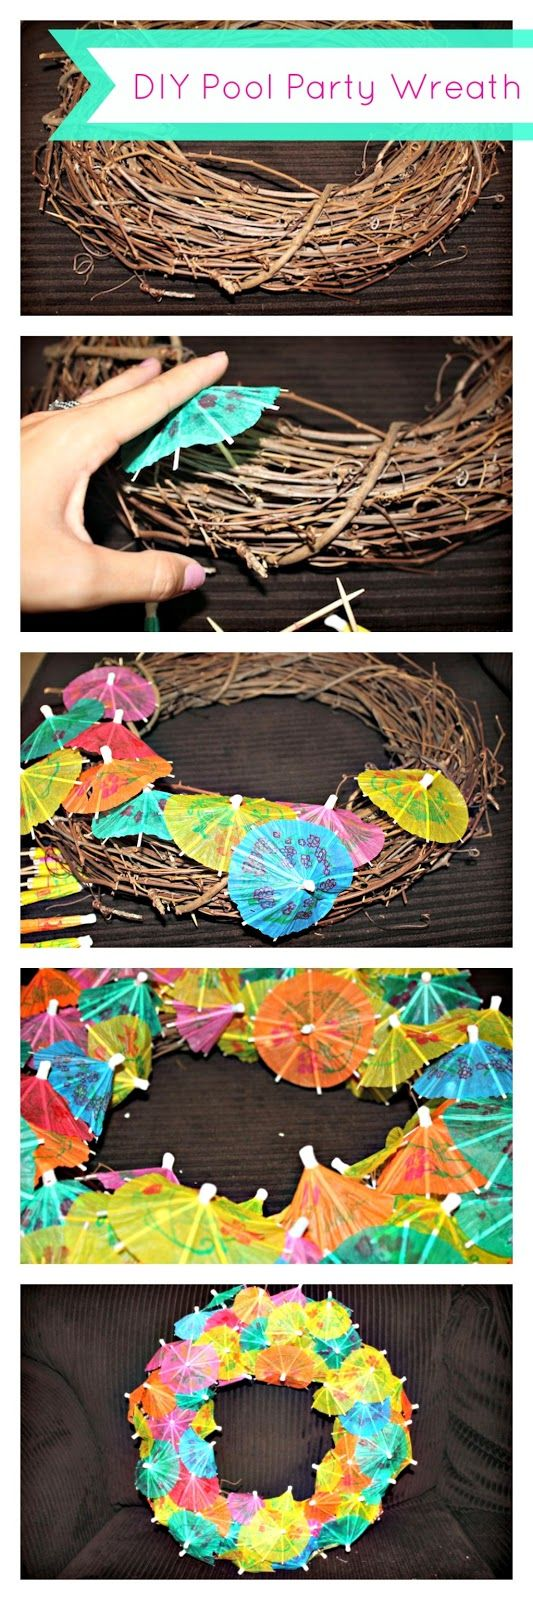 The NapTime Reviewer: Luau Party Ideas